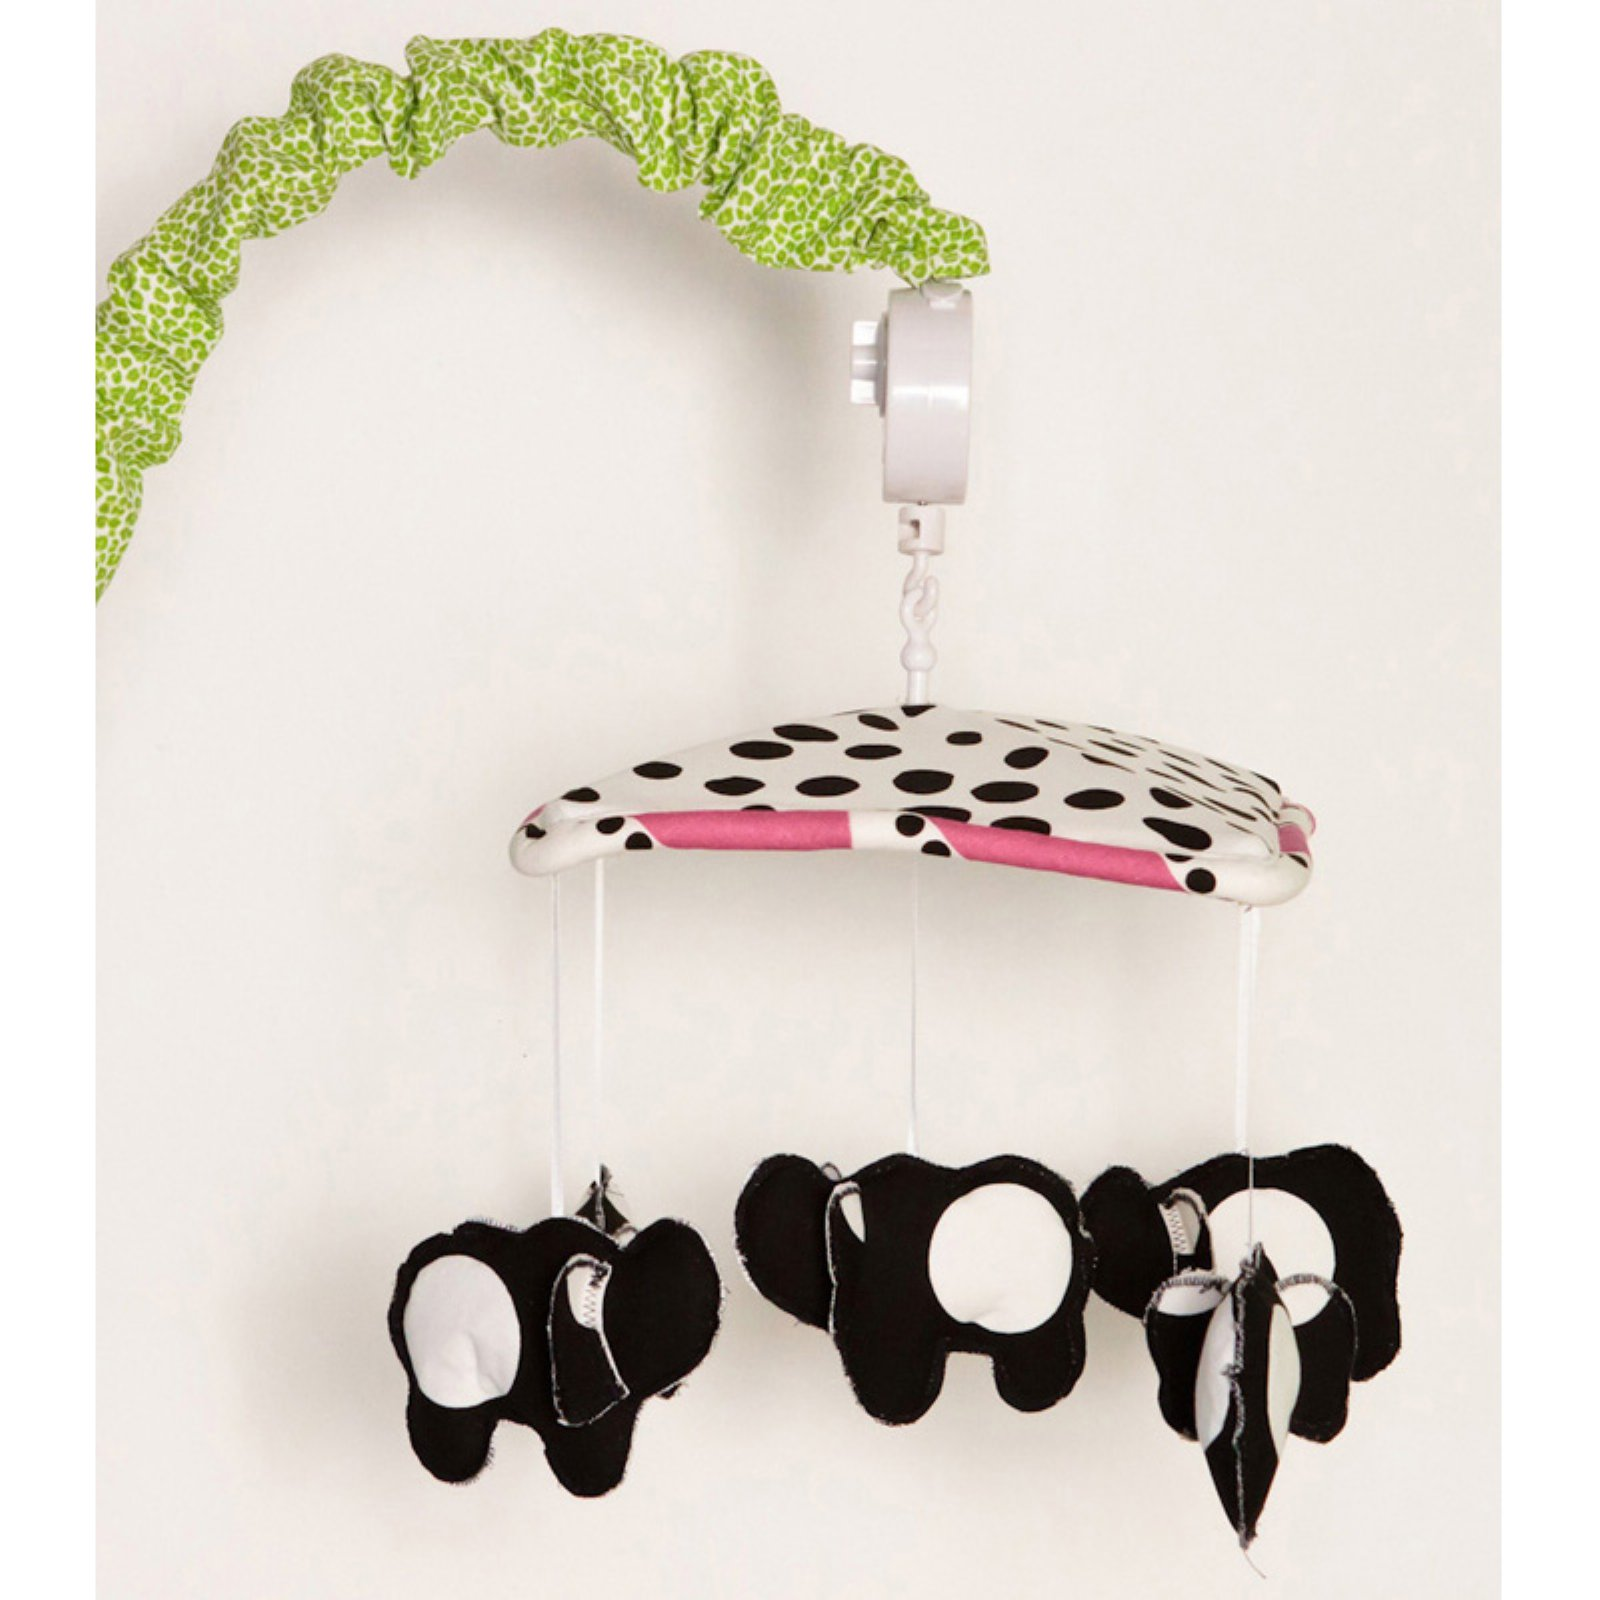 Click here to buy Cotton Tale Designs Hottsie Dottsie Musical Mobile by Cotton Tale Designs.